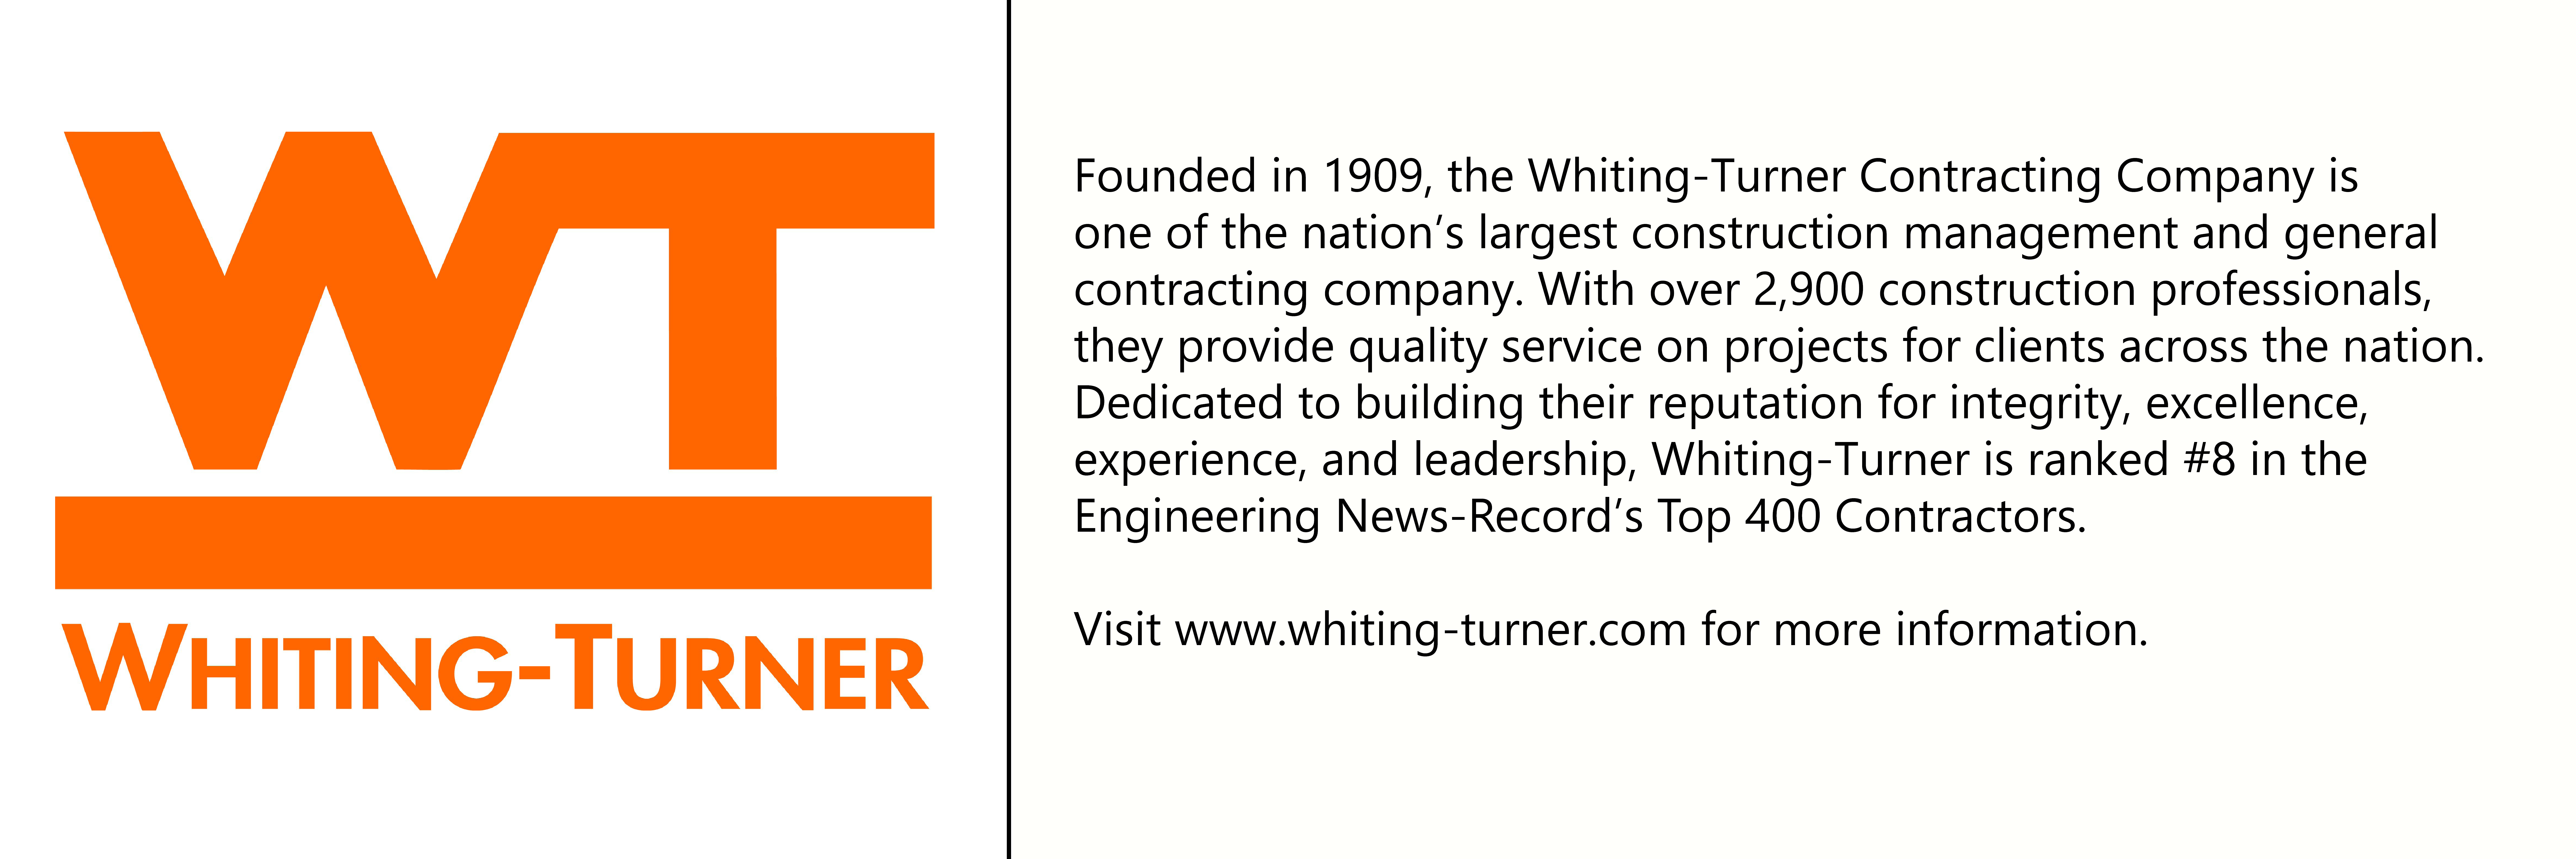 Whiting-Turner logo with description of company